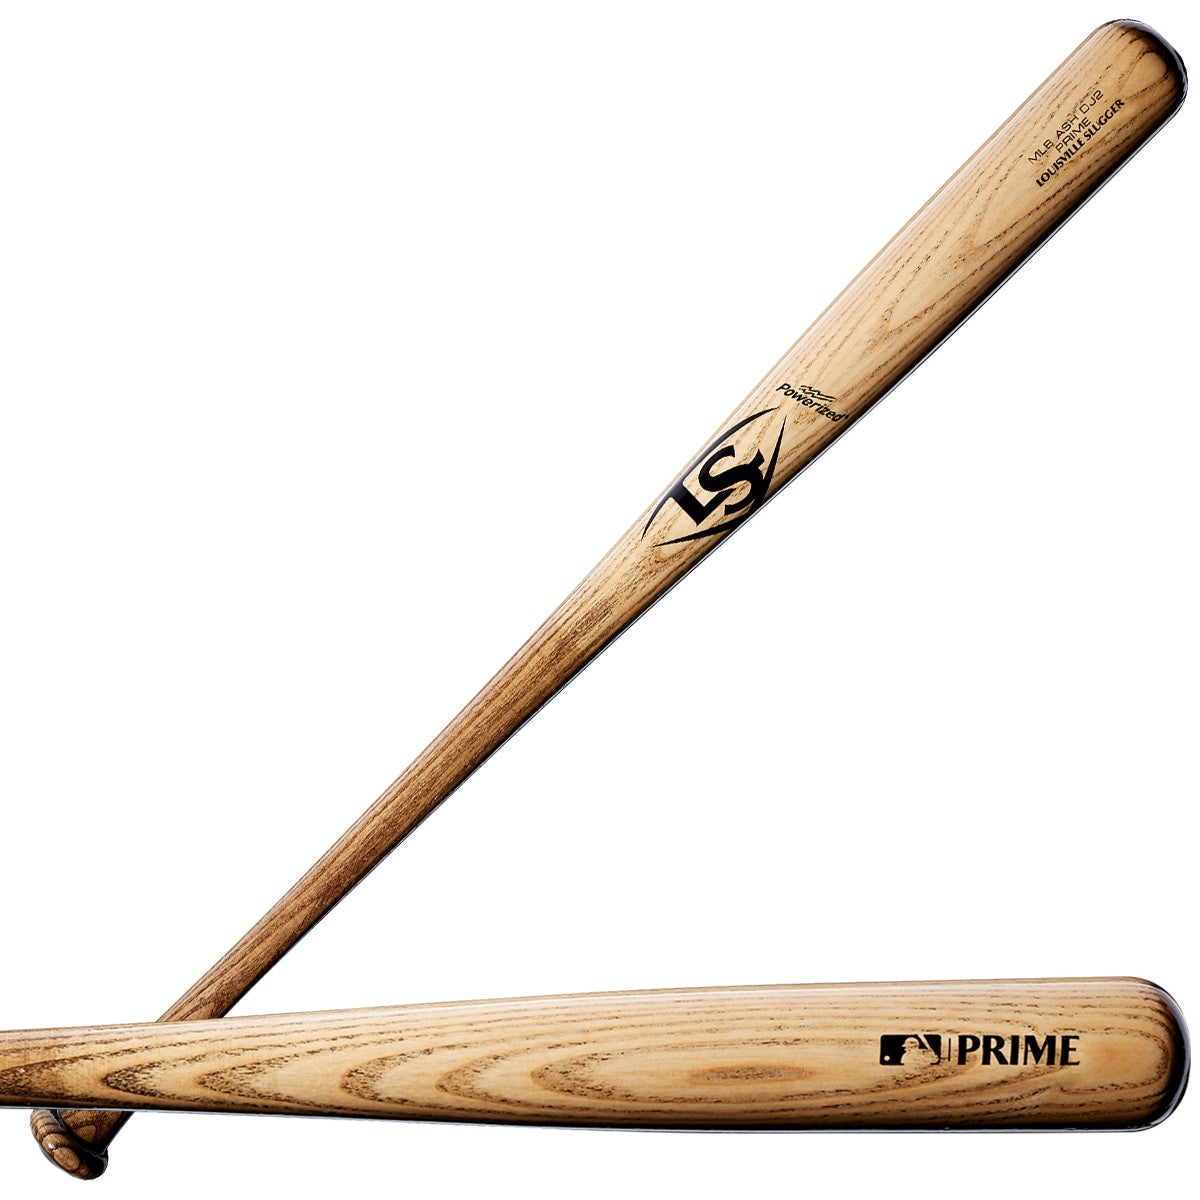 MLB Prime Ash DJ2 Old Fashioned Baseball Bat